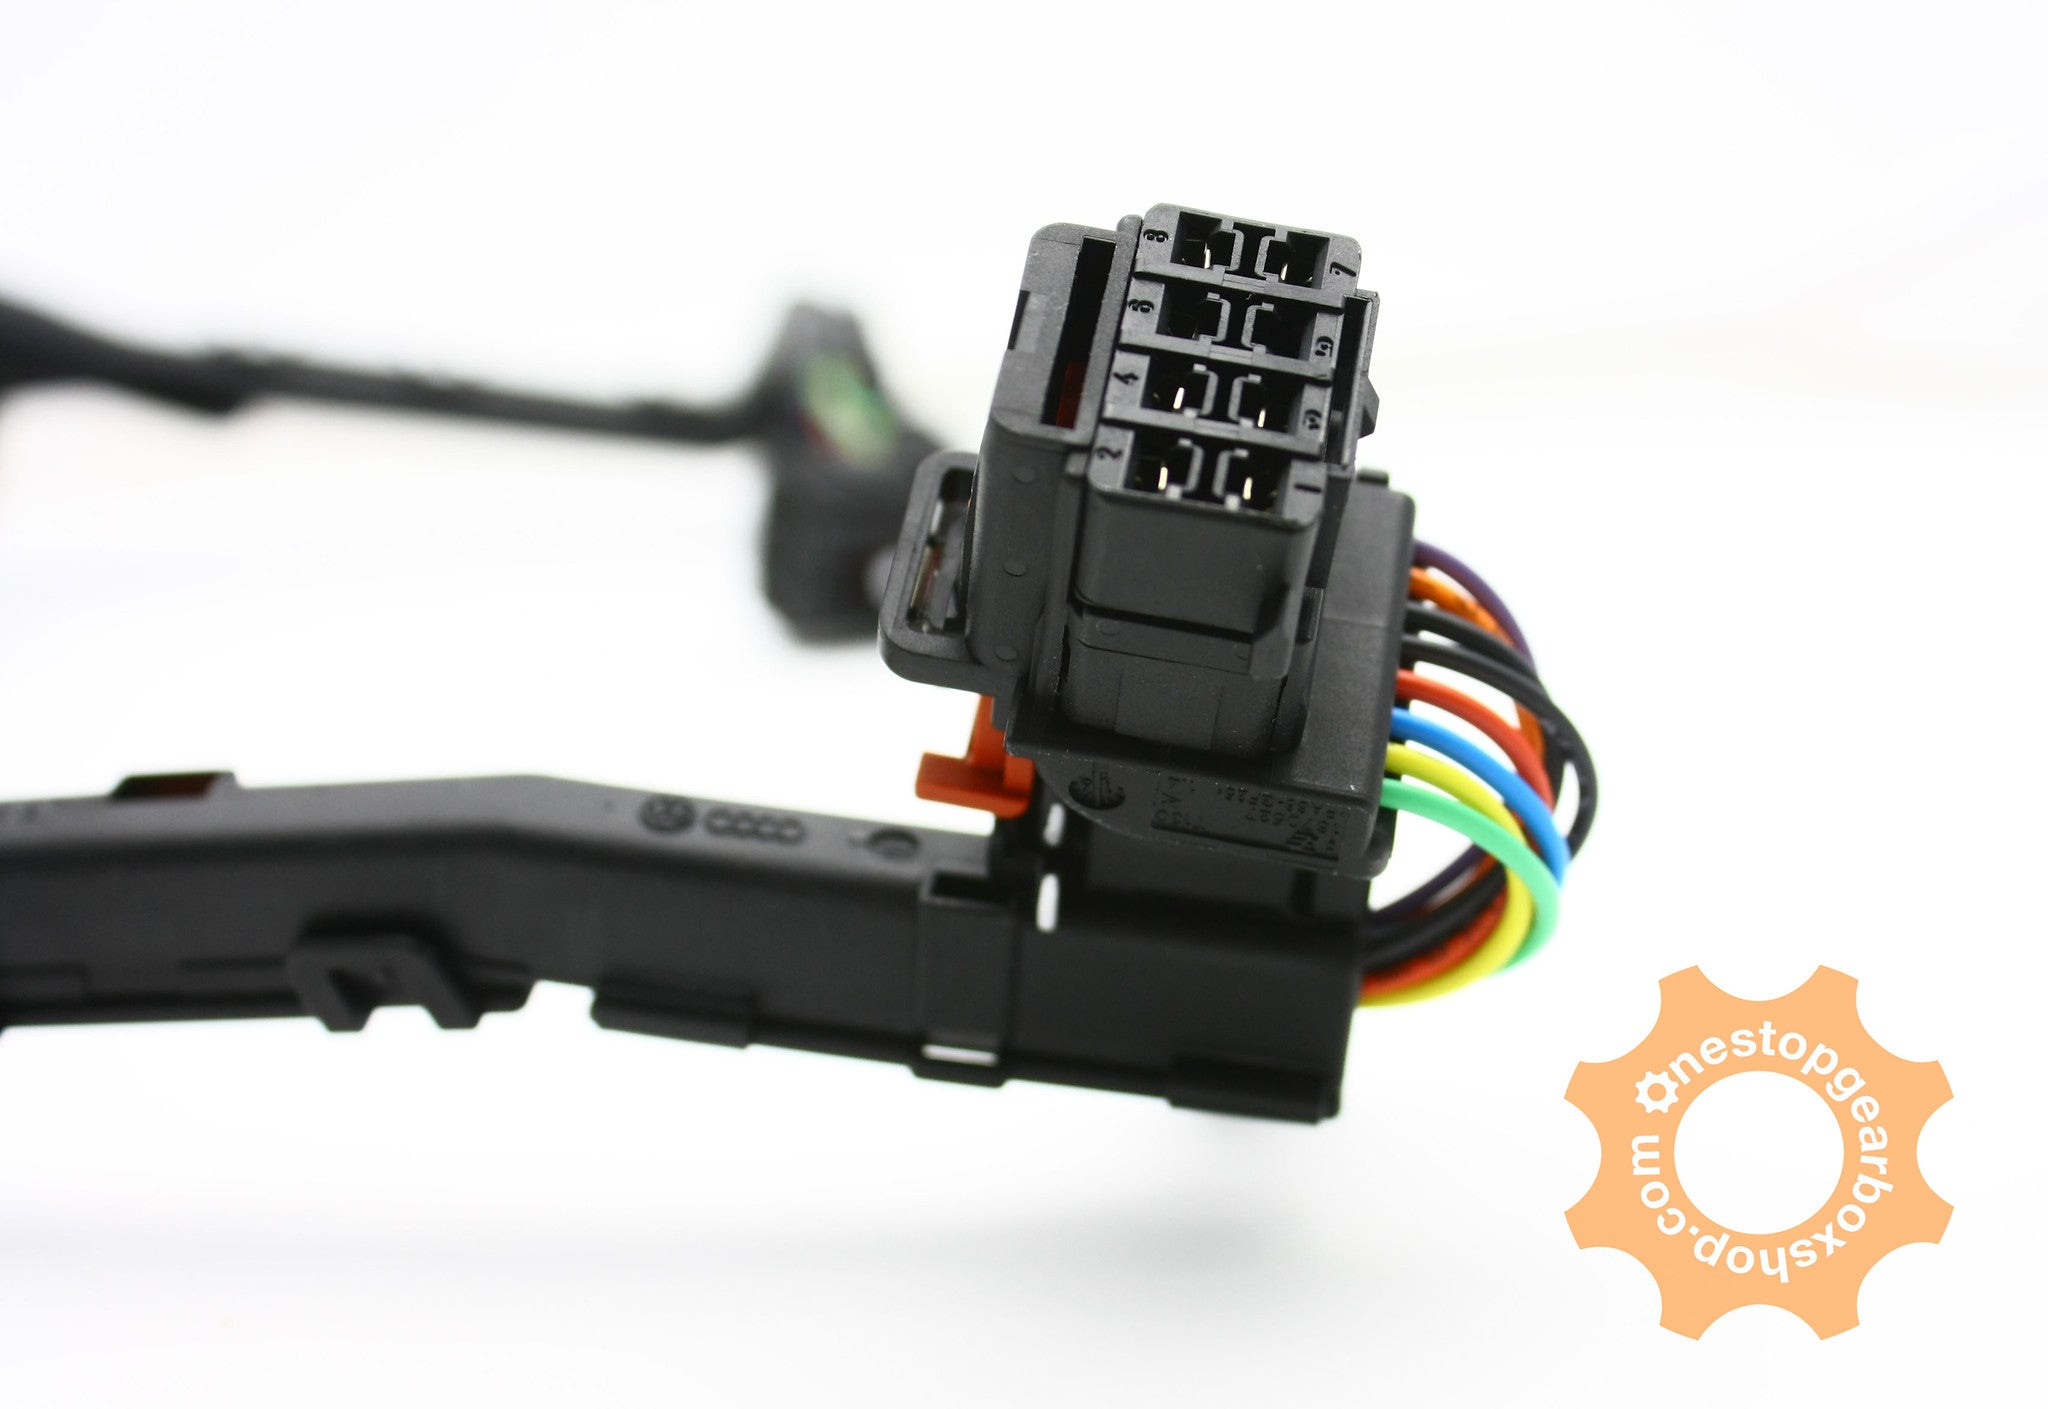 Audi 0b5 Dl501 Automatic Gearbox Internal Wiring Harness Ob5 321 391 For 2008 A4 Genuine Oe